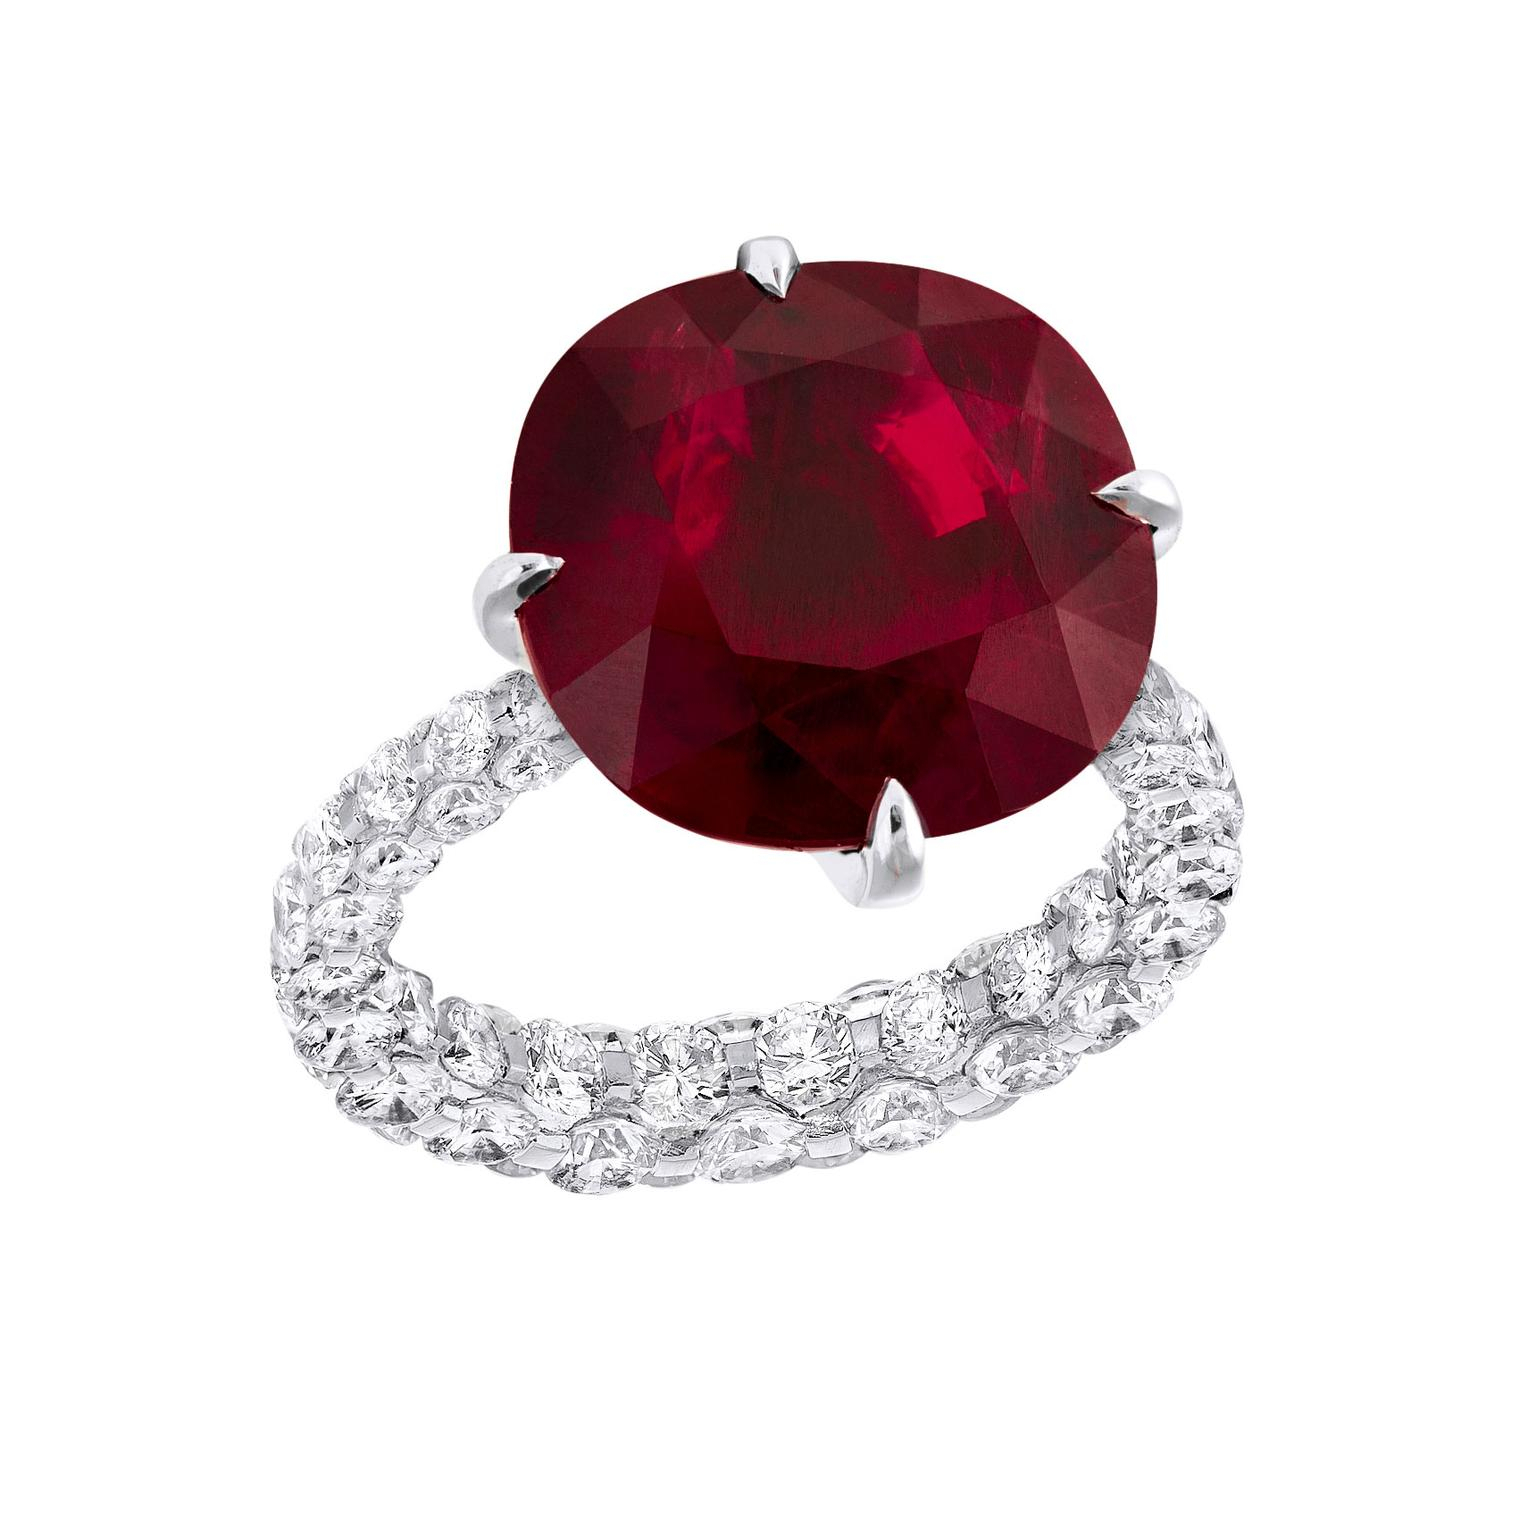 Boghossian Les Merveilles Cushion Cut Ruby Ring Regarding Cushion Cut Ruby Rings (View 13 of 25)